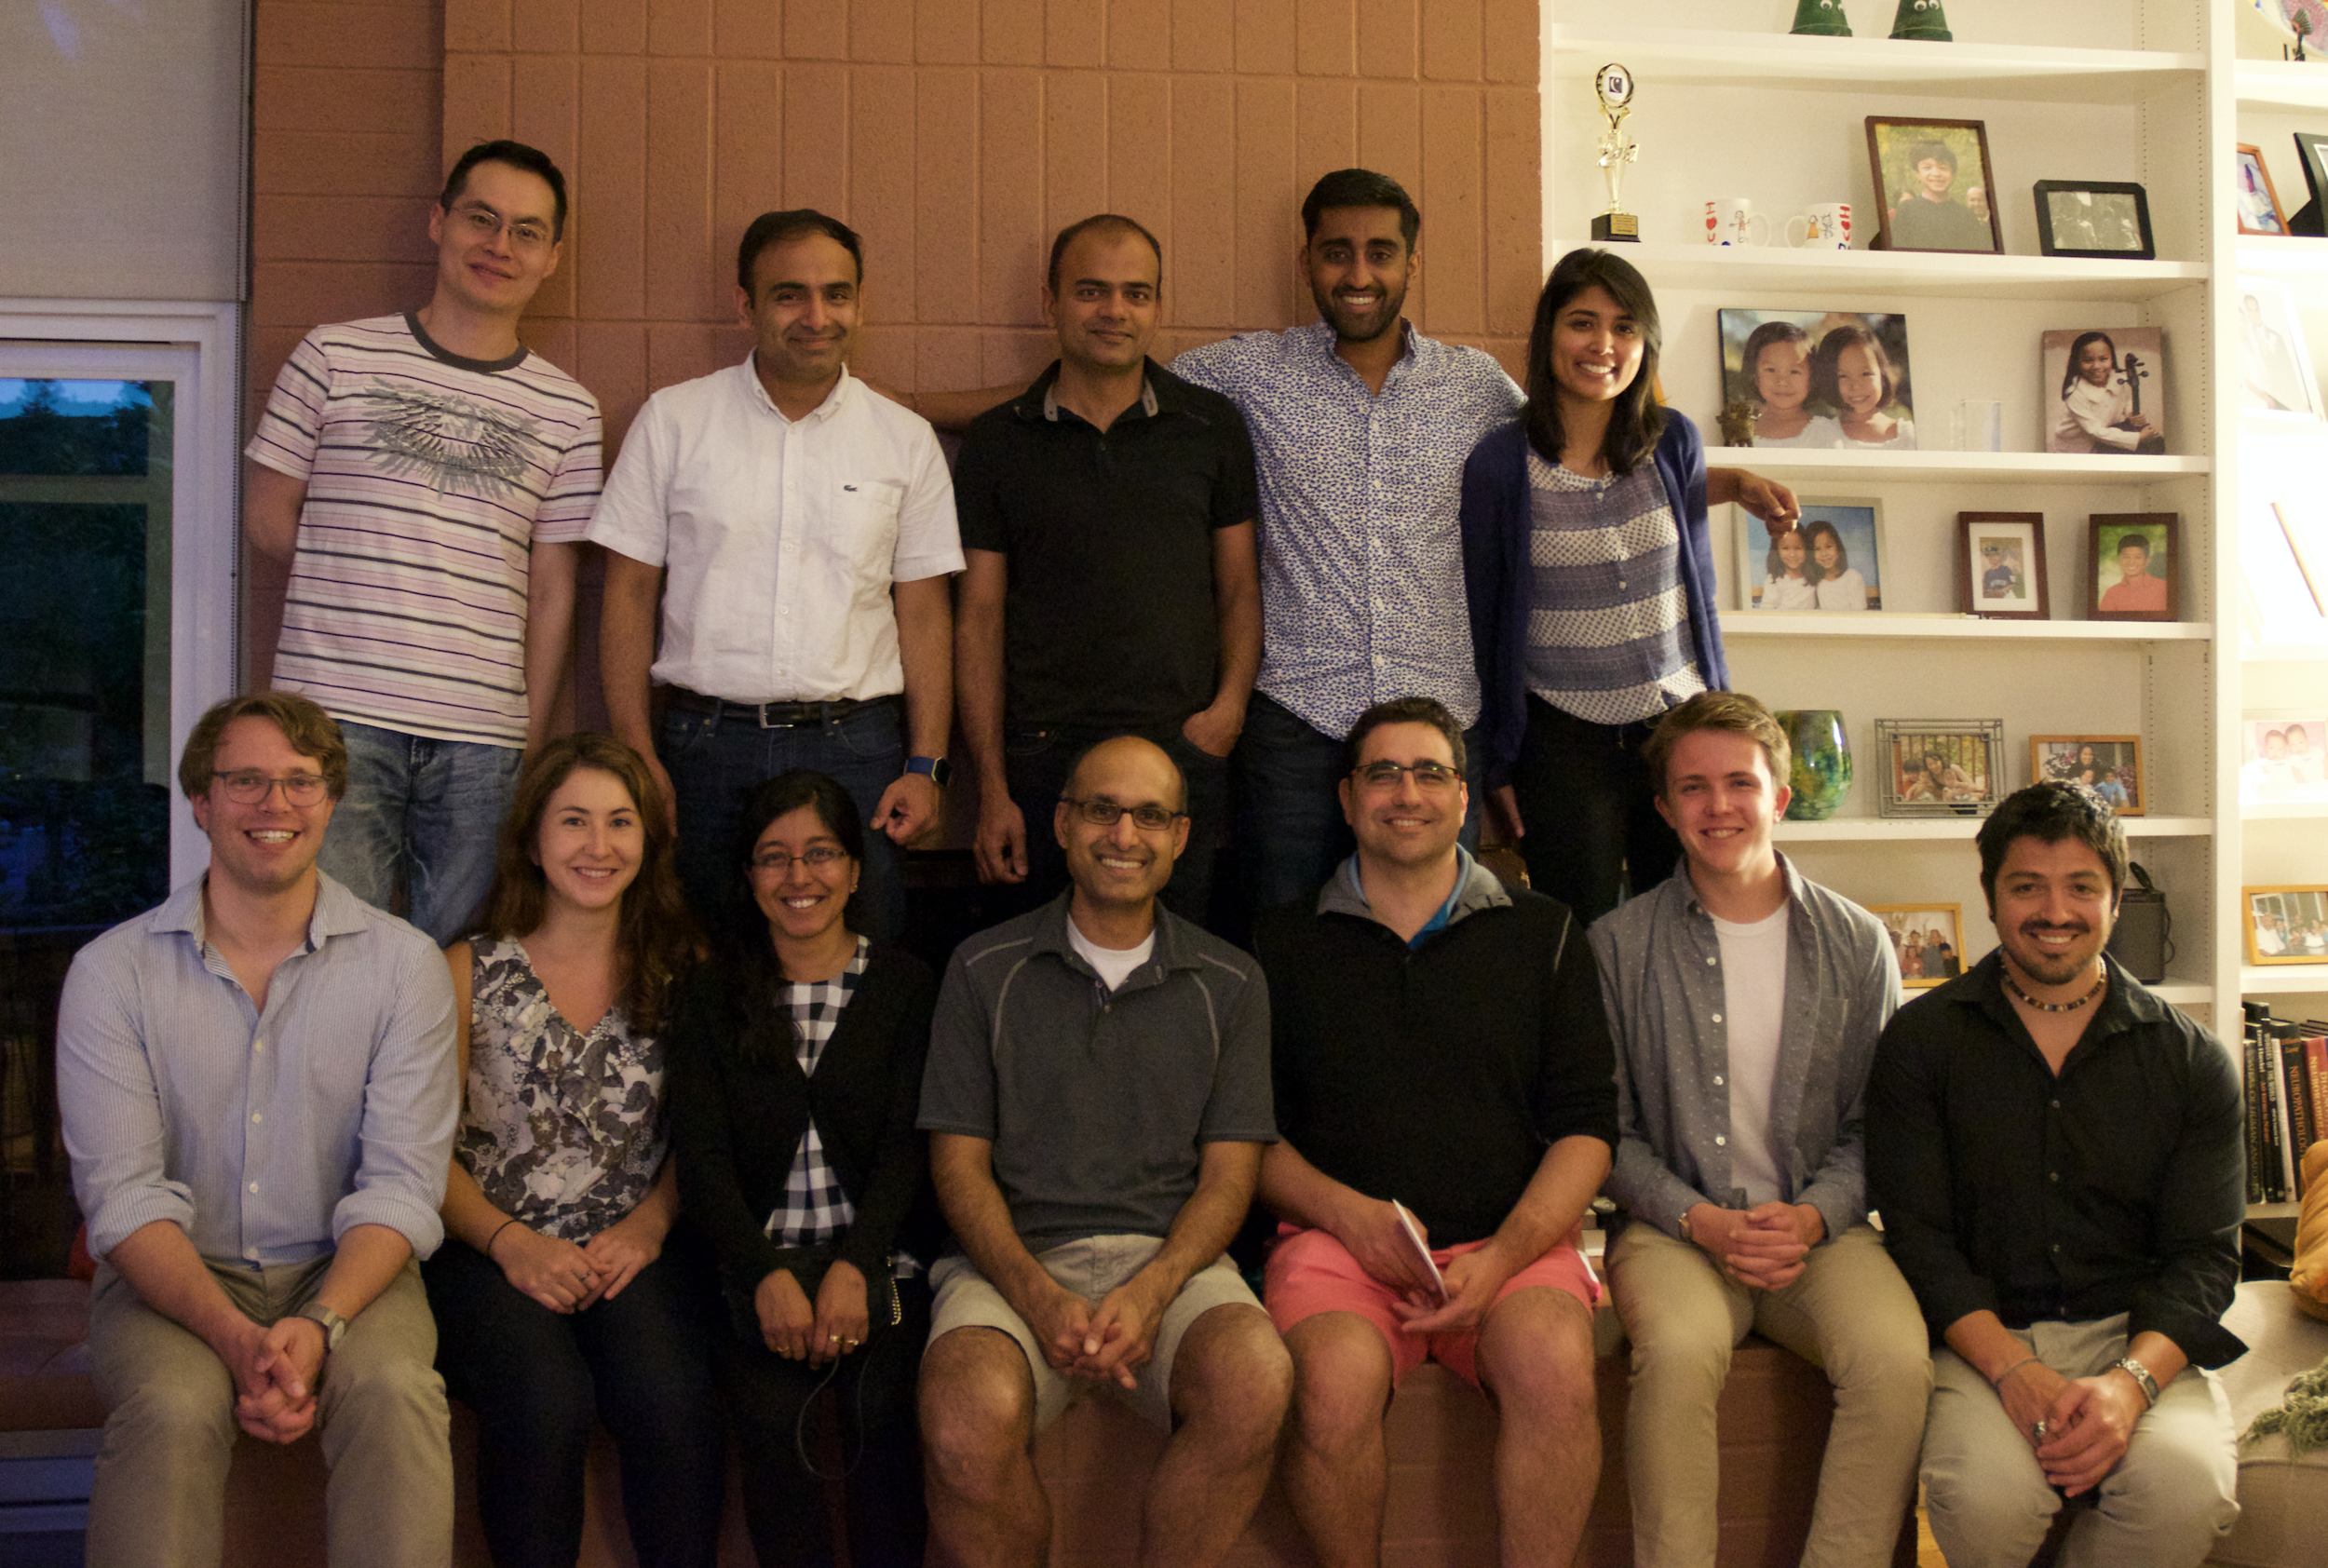 Farewell party for a few Rohatgi lab members